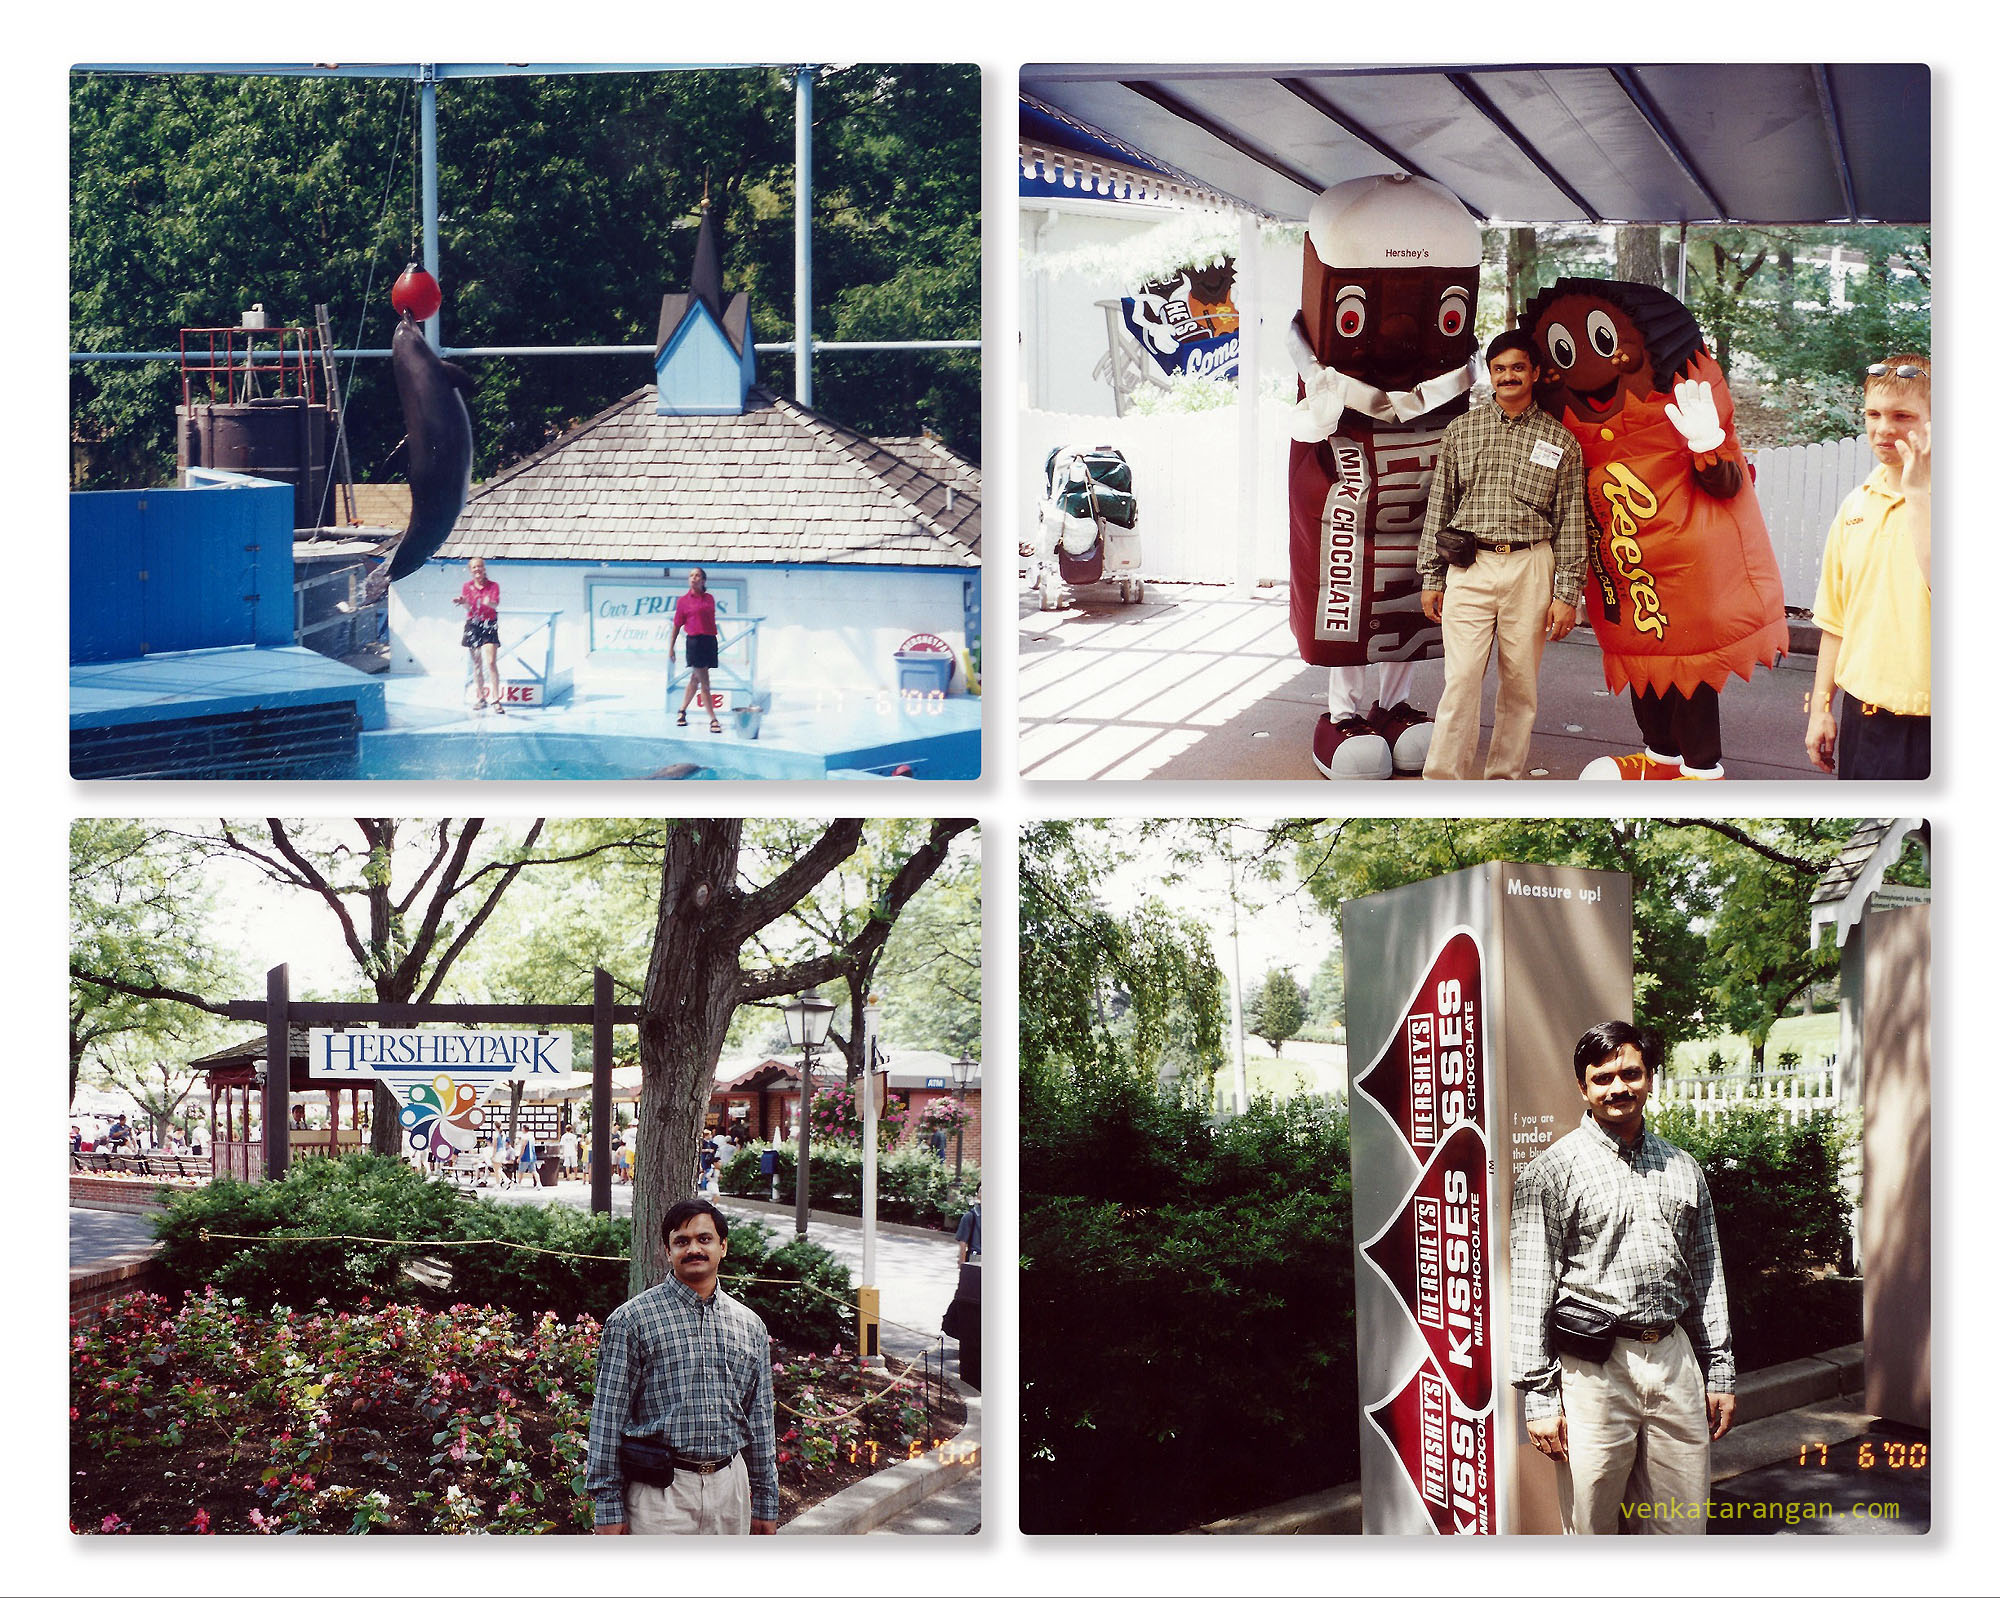 Dolphin show and other entertainment in Hersheypark, Hershey, Pennsylvania in 1999